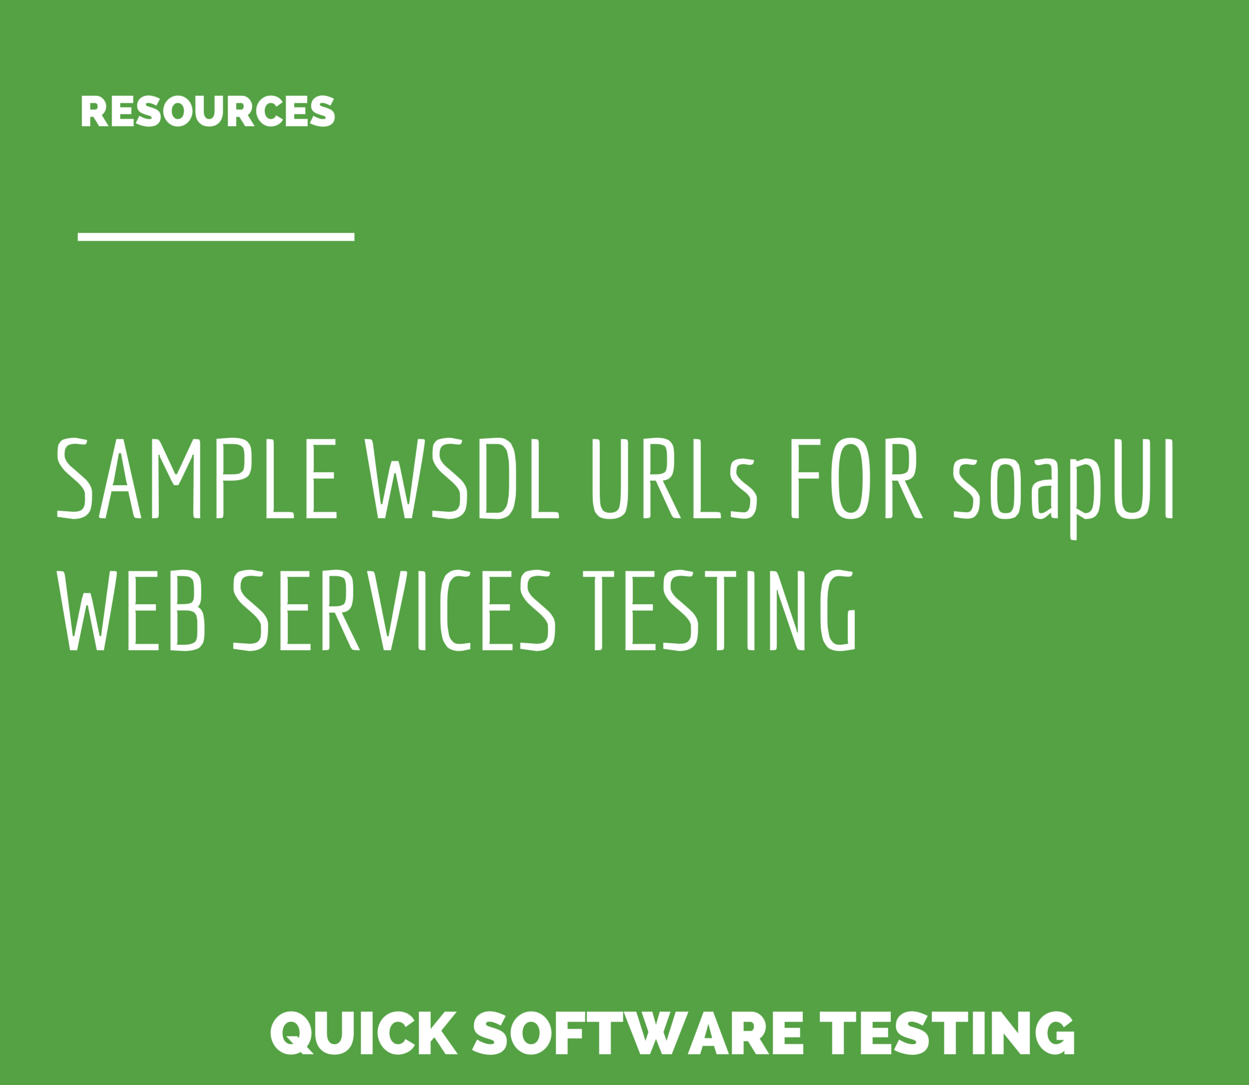 sle wsdl urls for soapui web services testing